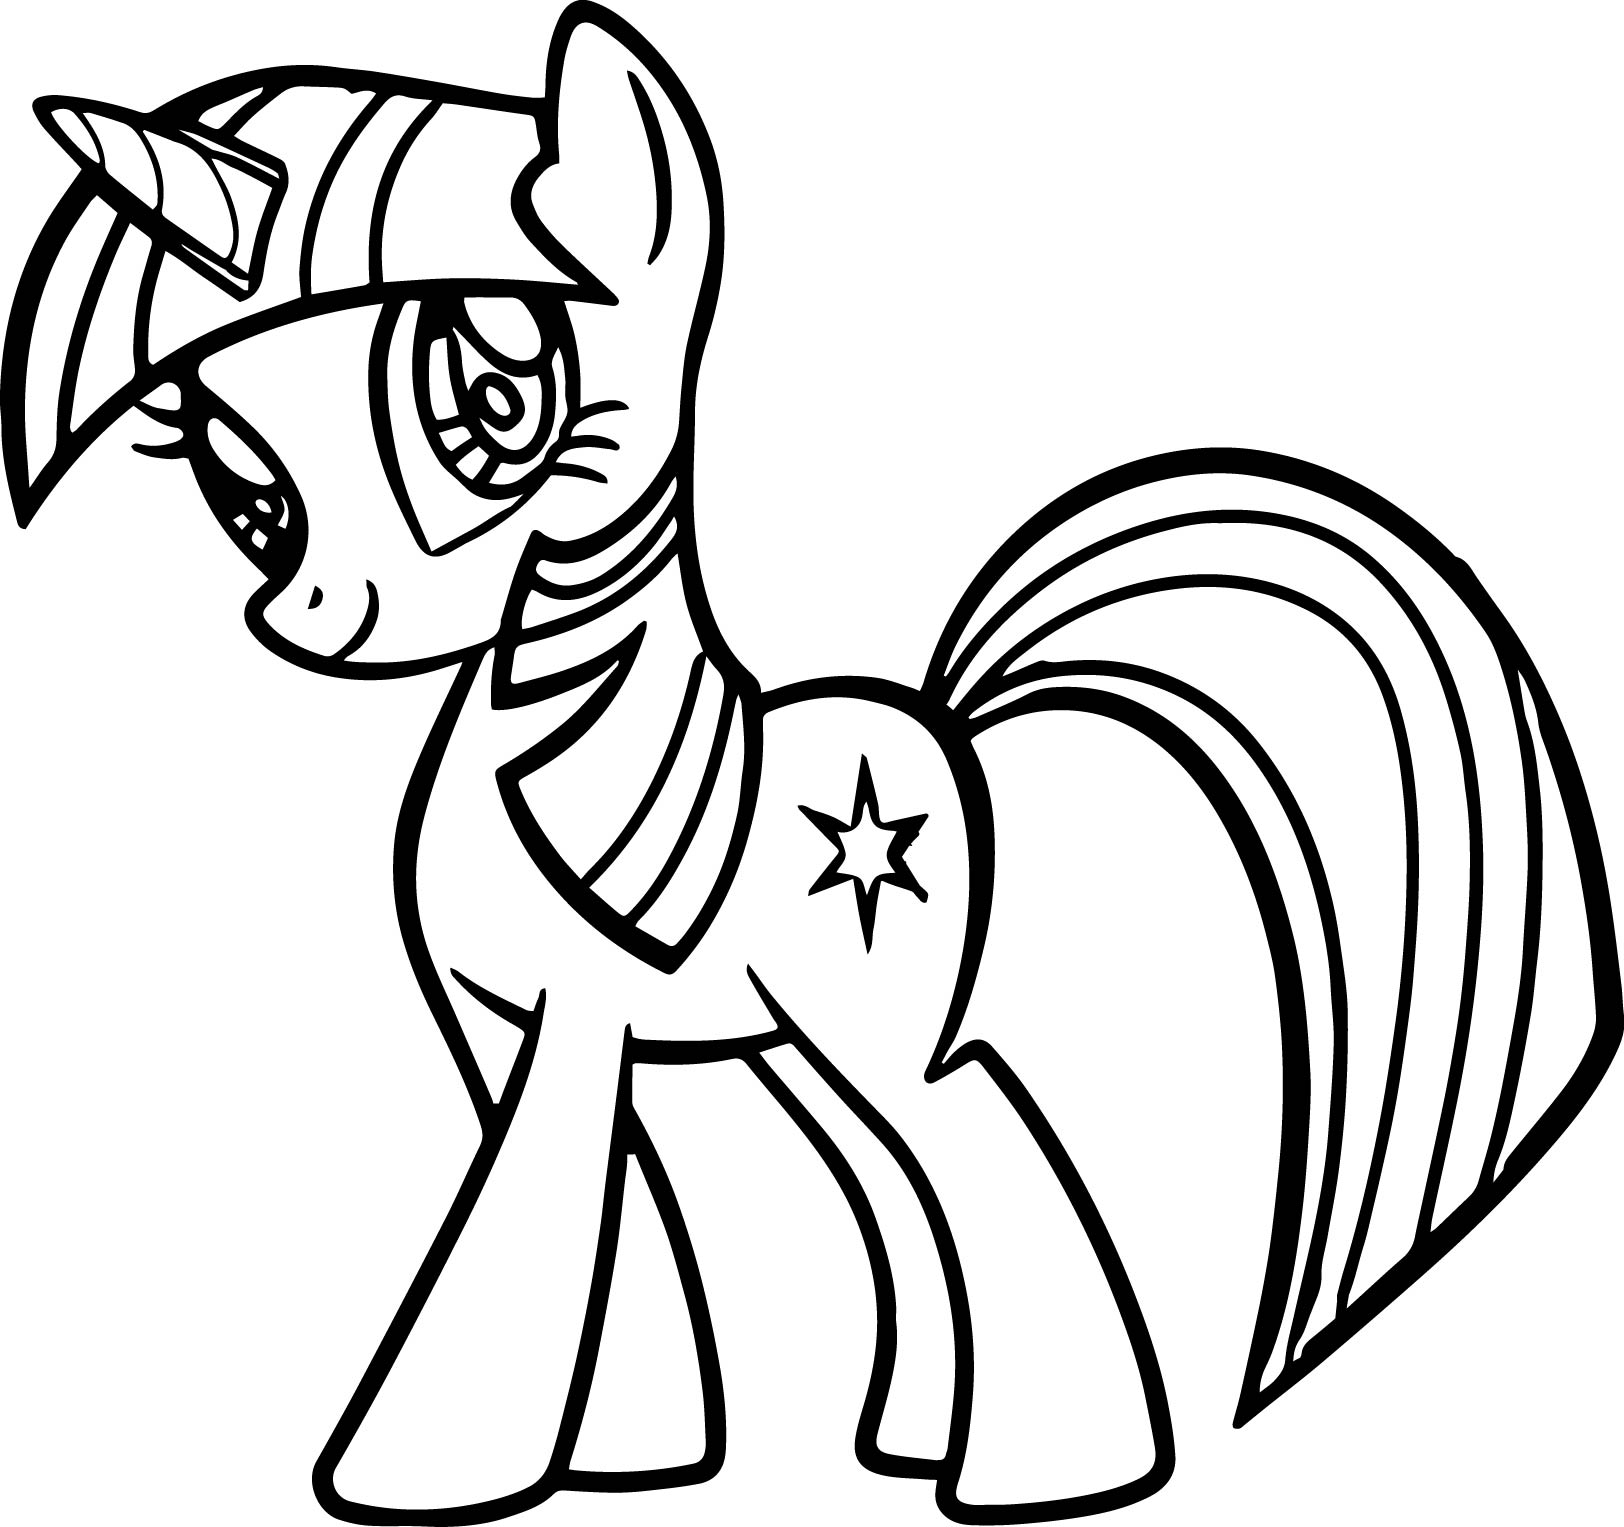 1624x1527 Cute My Little Pony Coloring Page Wecoloringpage